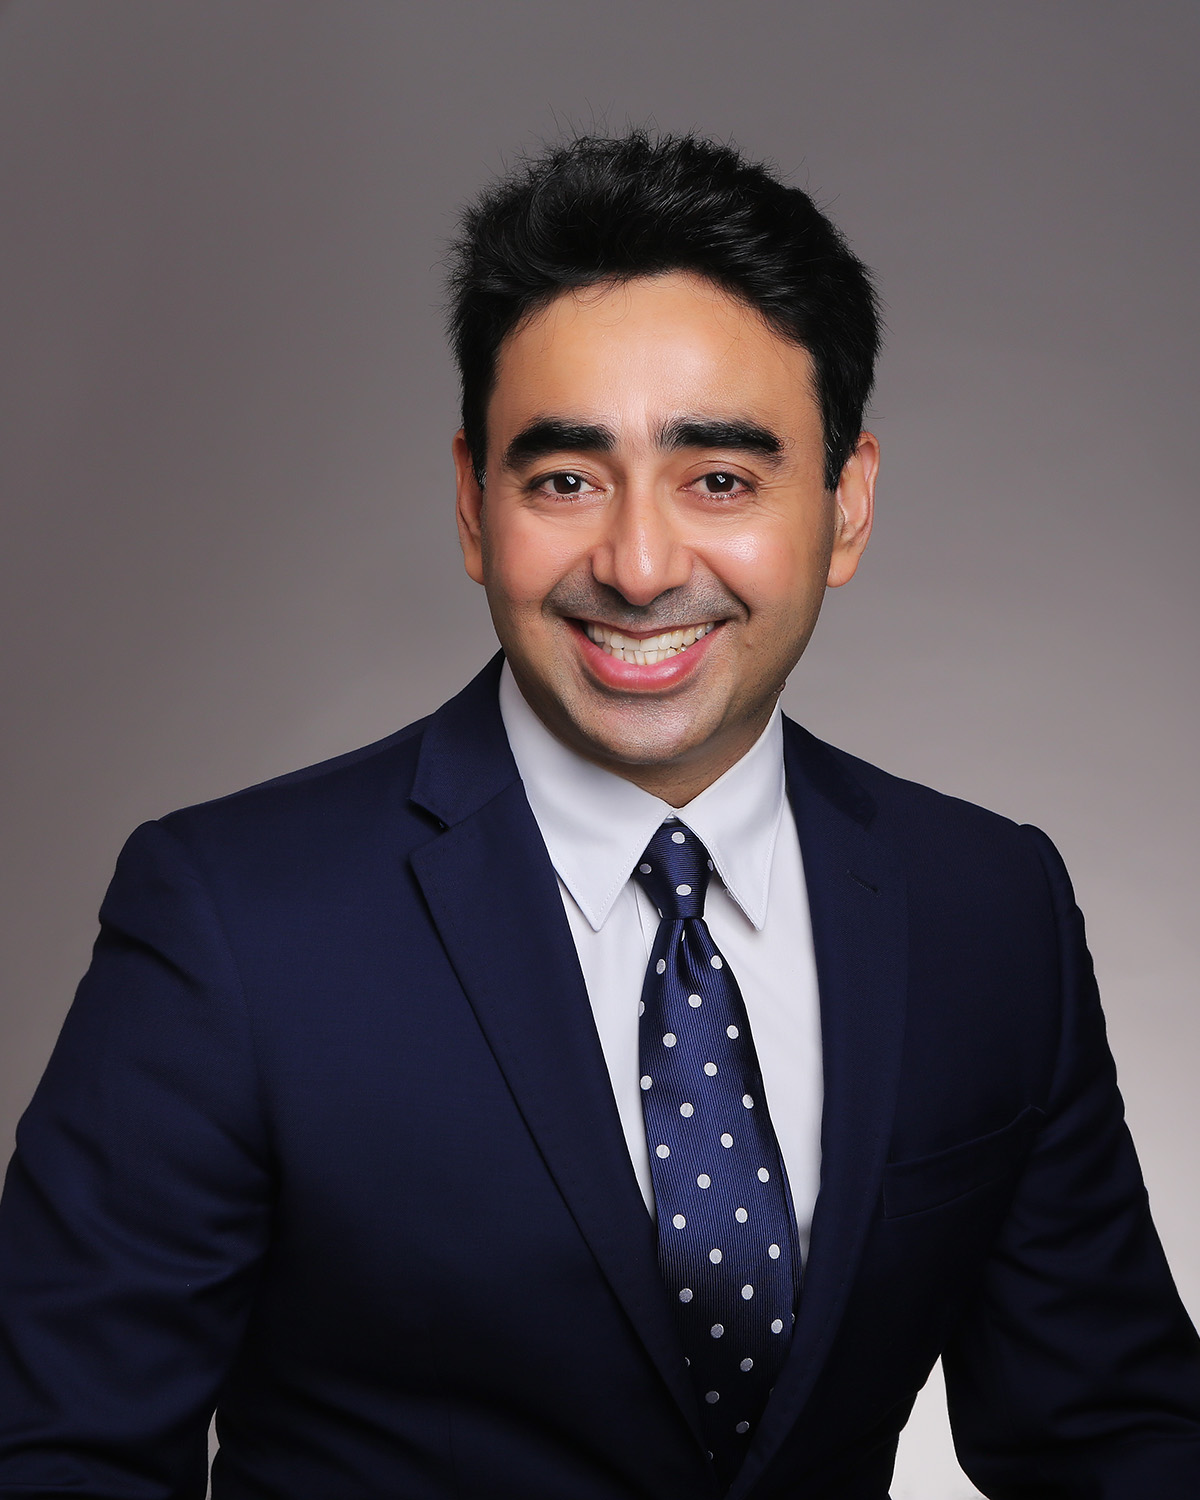 Himanshu Verma, Founder and CEO of Connected to India